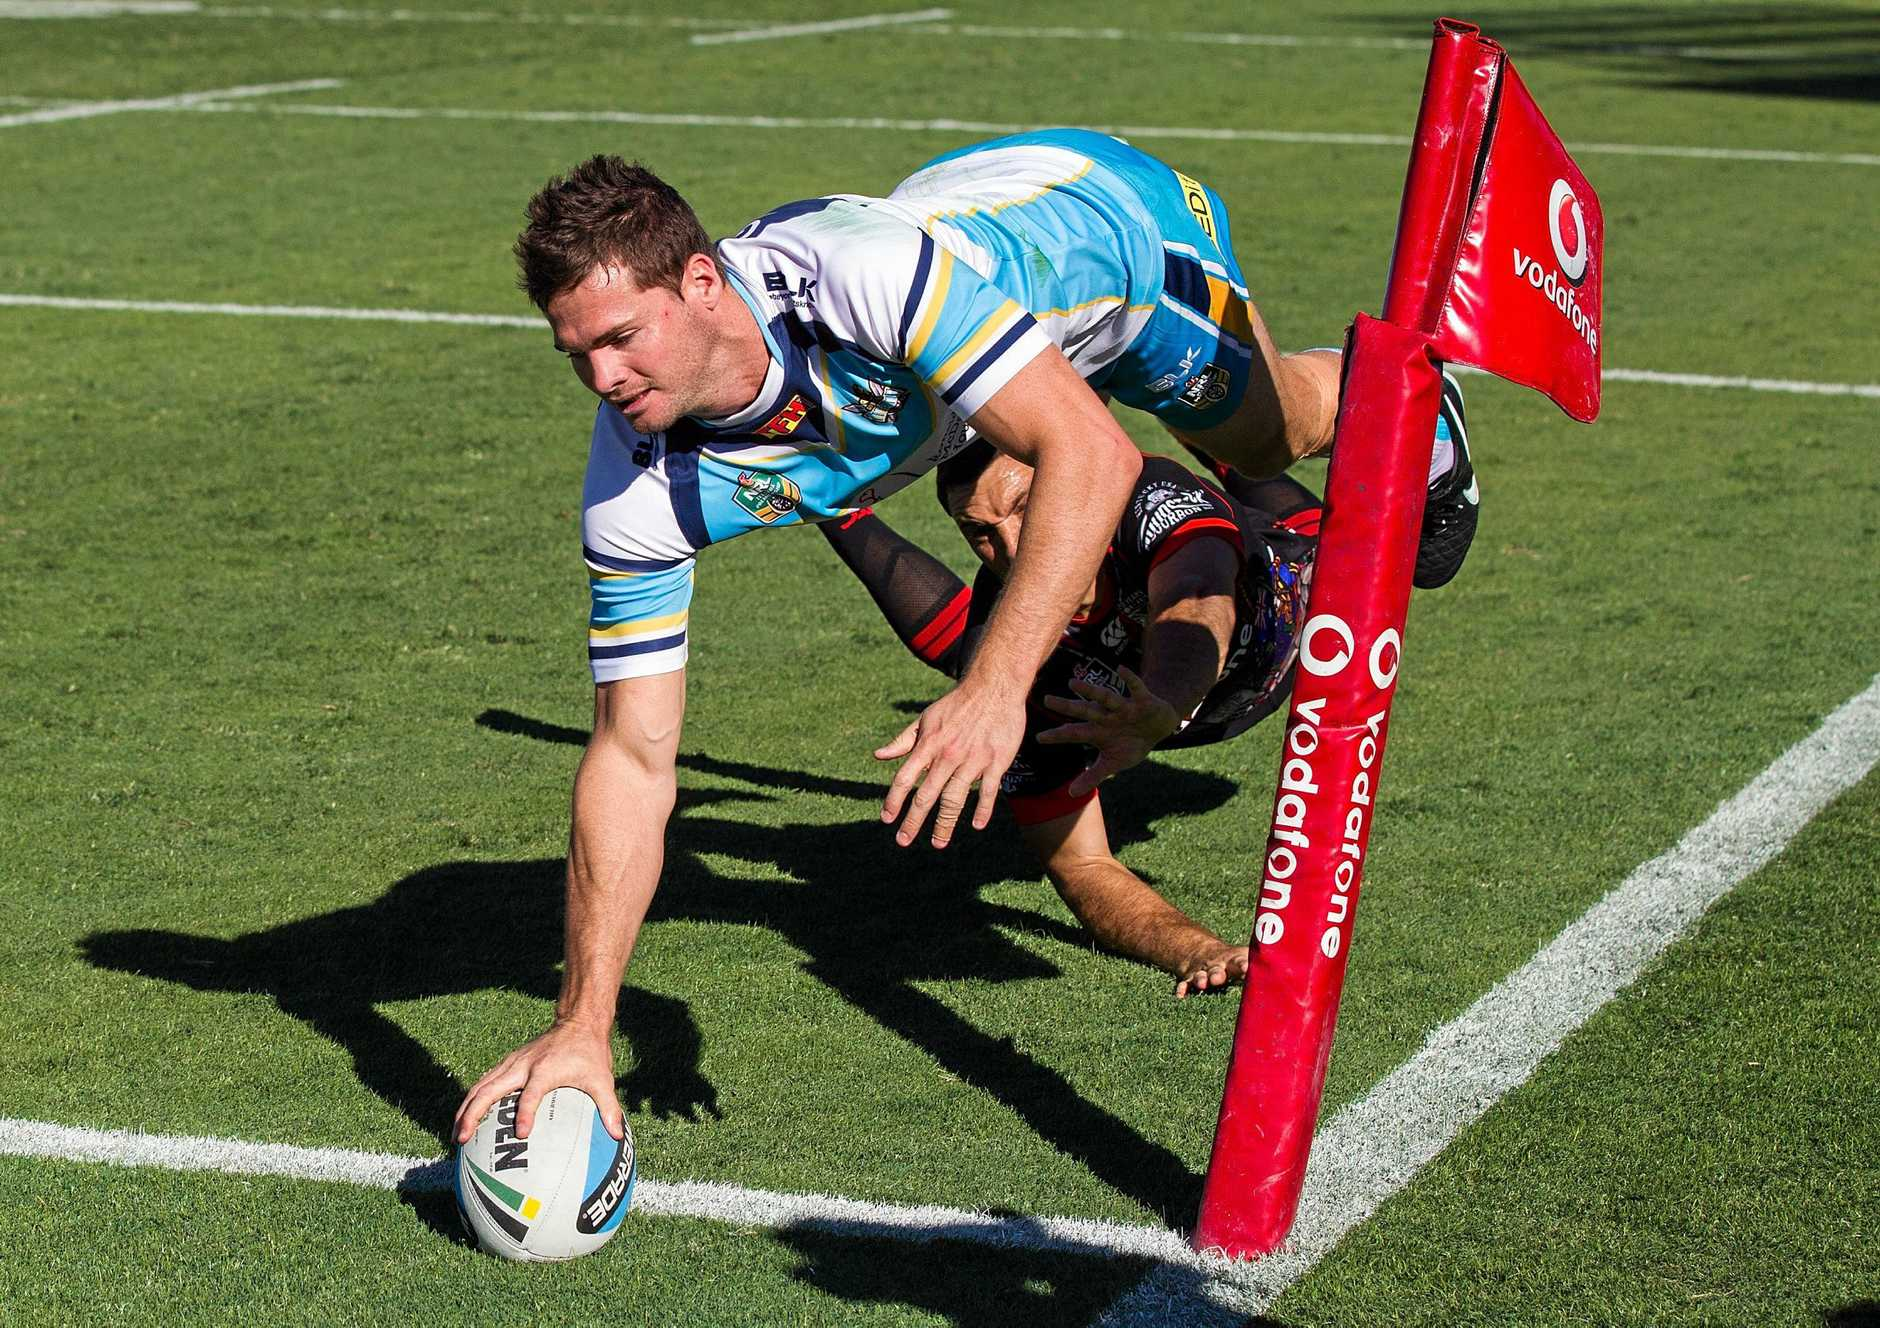 Anthony Don has been a prolific try-scorer for the Gold Coast Titans, currently sitting equal leading try-scorer with David Mead.